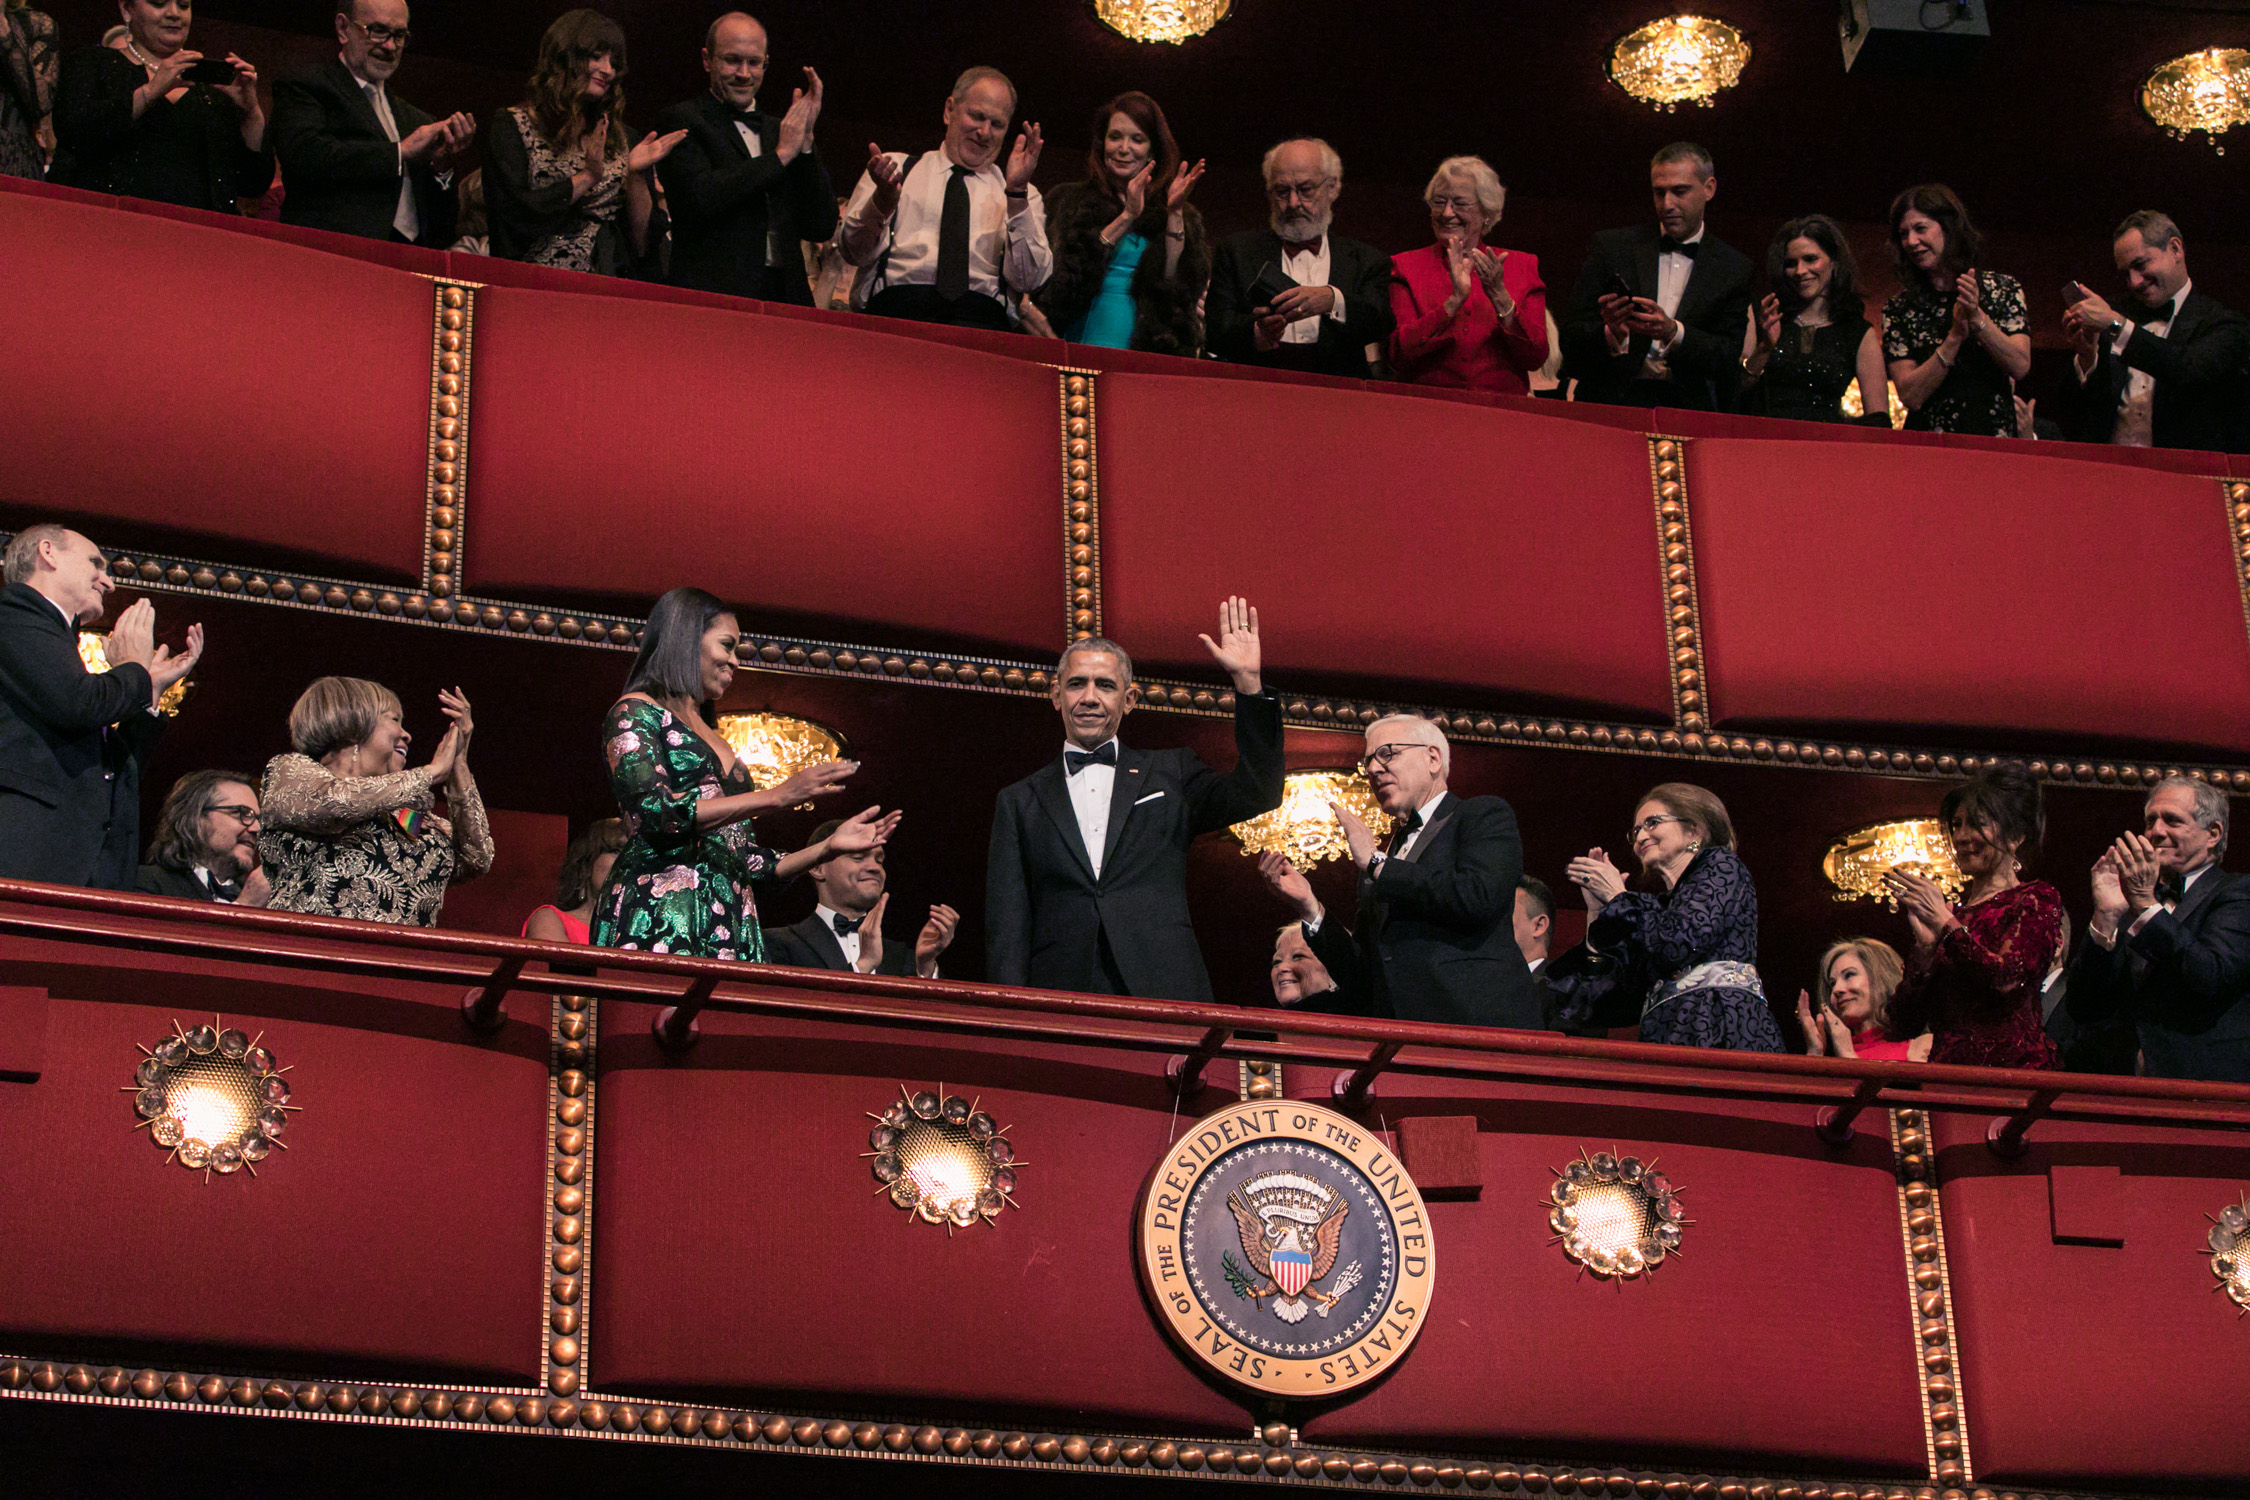 image of President Barack Obama and Michelle Obama with David Rubenstein and Mavis Staples at Kennedy Center Honors and the John F Kennedy Center for the Performing Arts